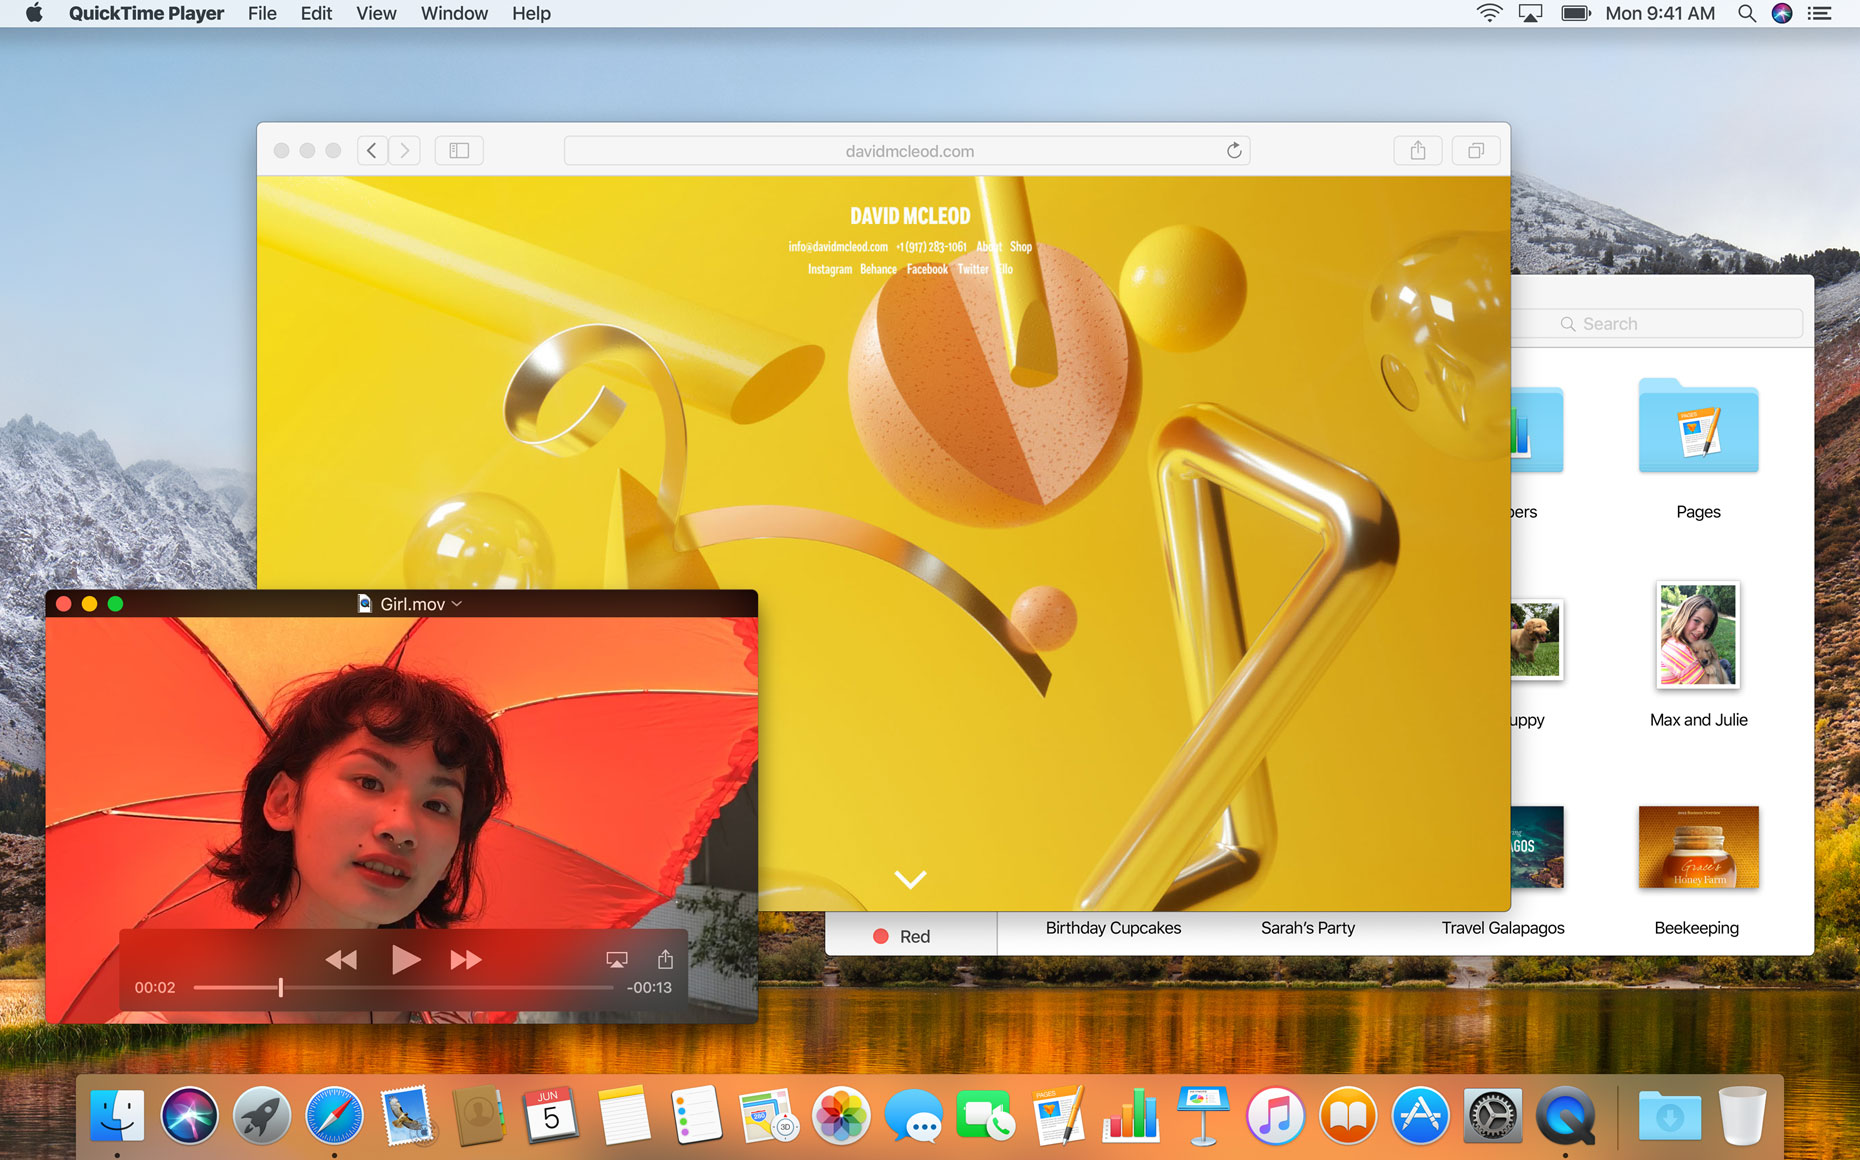 100+ new features in macOS High Sierra